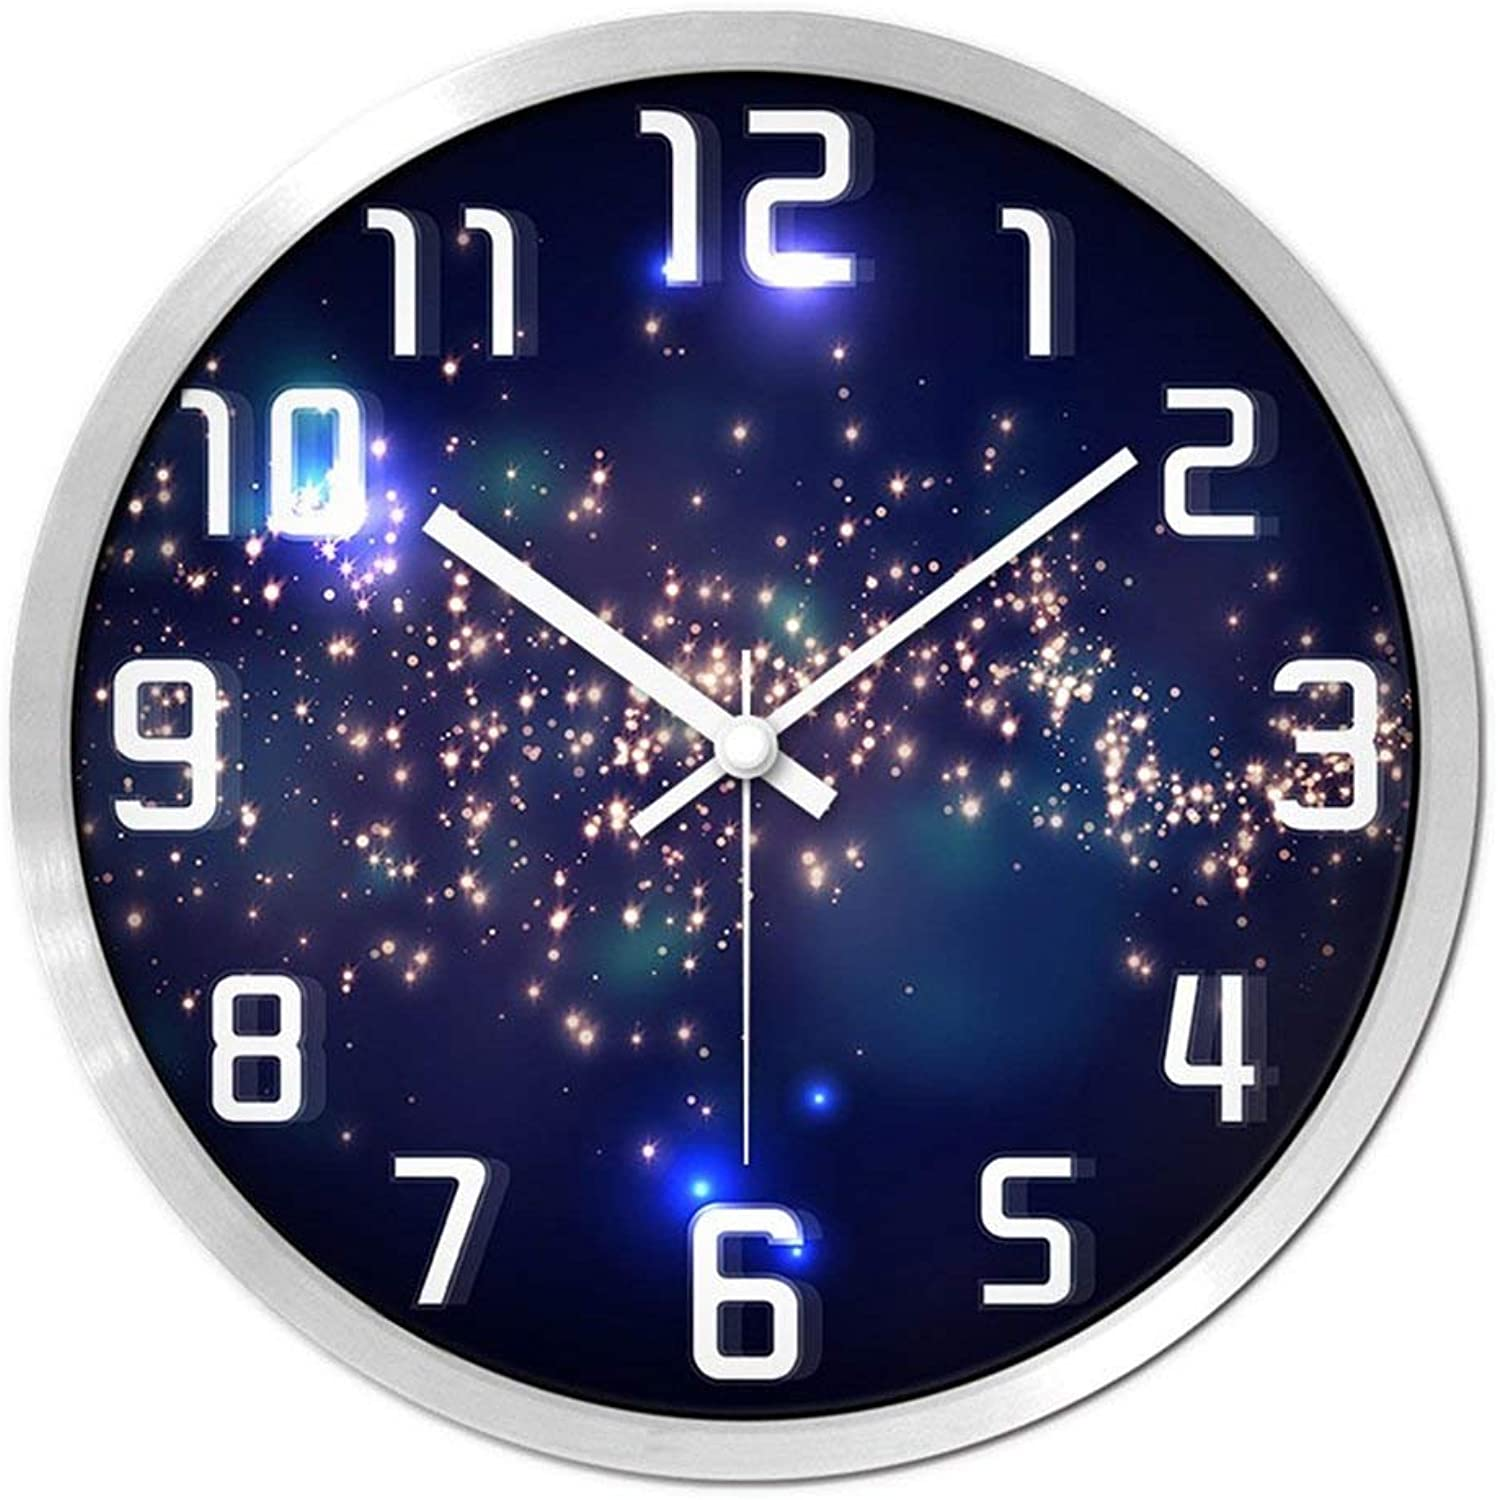 Wall Clocks Watches and Clocks Wall Clock Living Room Creative Modern Circular Clock Quartz Watches Pocket Watch Bedroom Mute Personality Simple Fashion Wall Clock (color   Silver, Size   14inch)